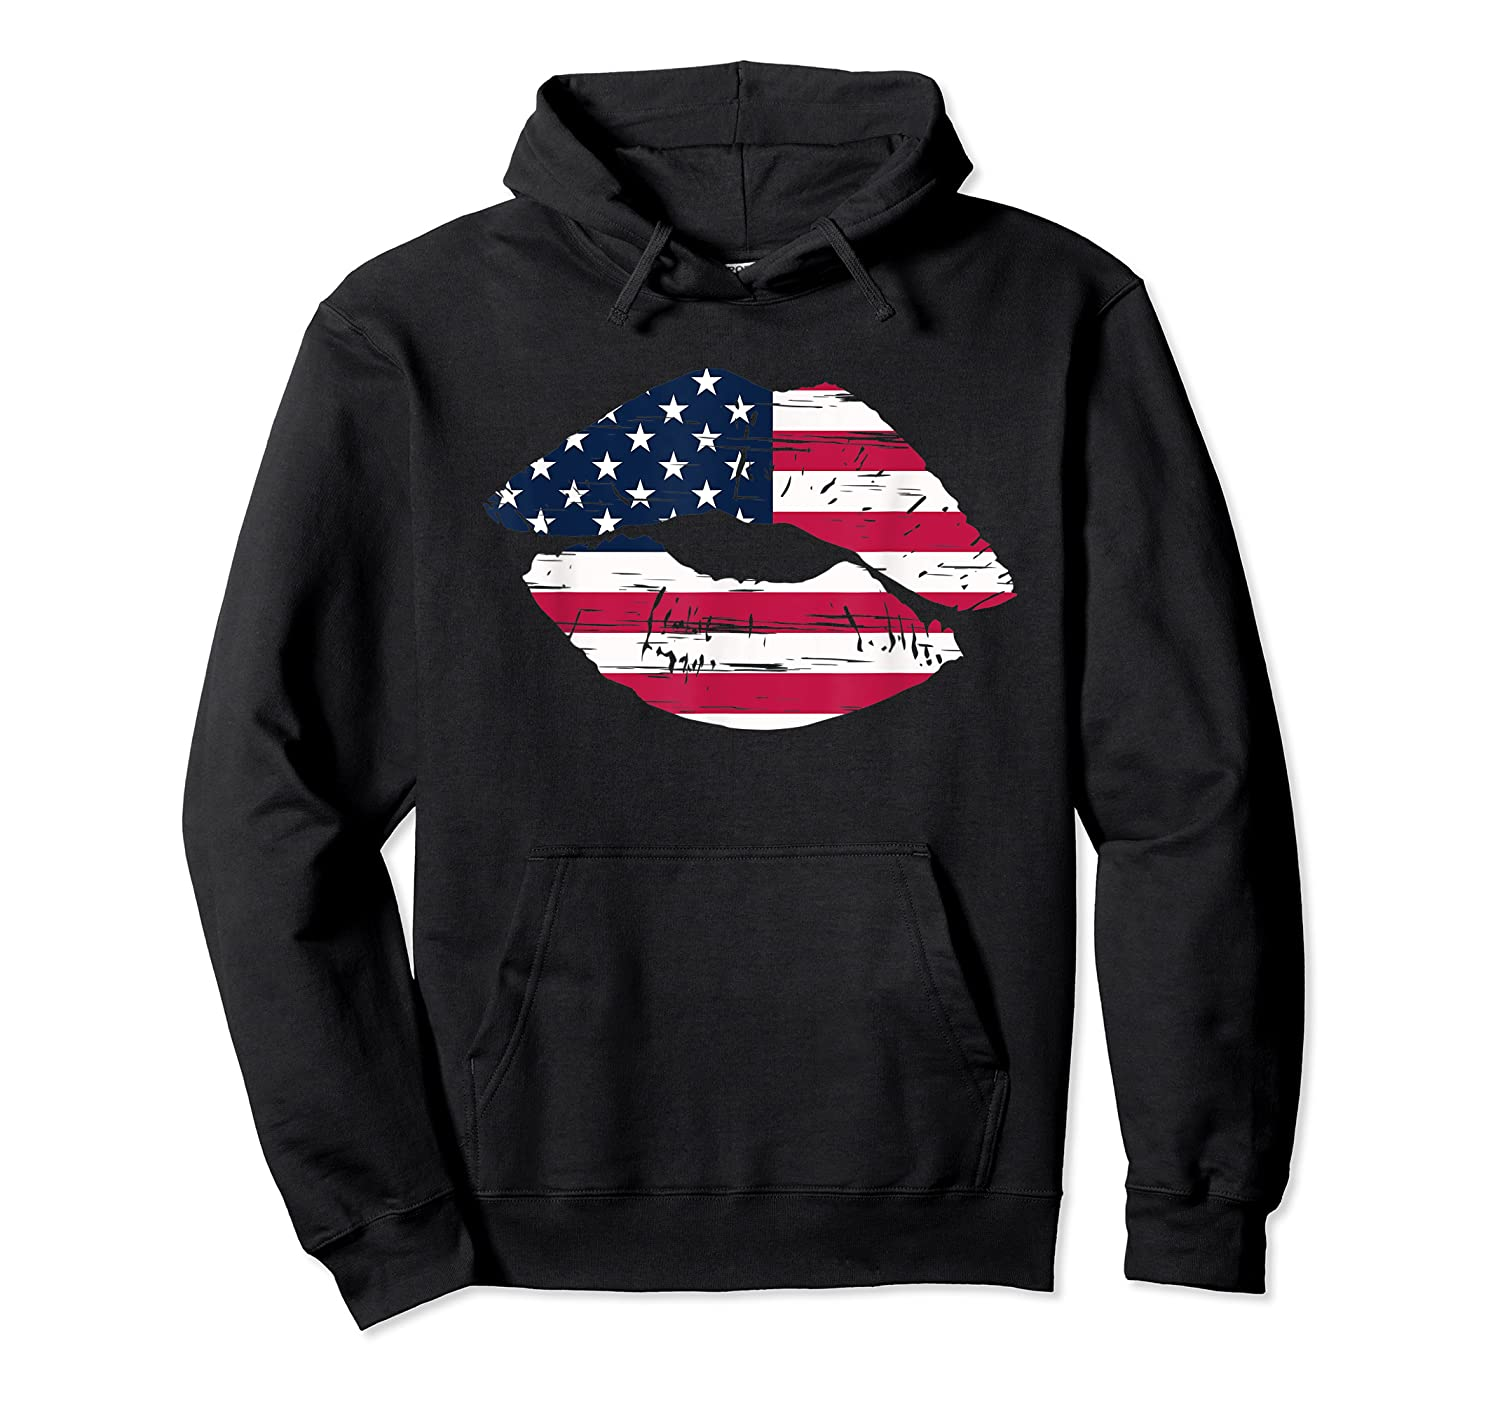 Cool Lips With American Flag Girl 4th Of July Gift Shirts Unisex Pullover Hoodie